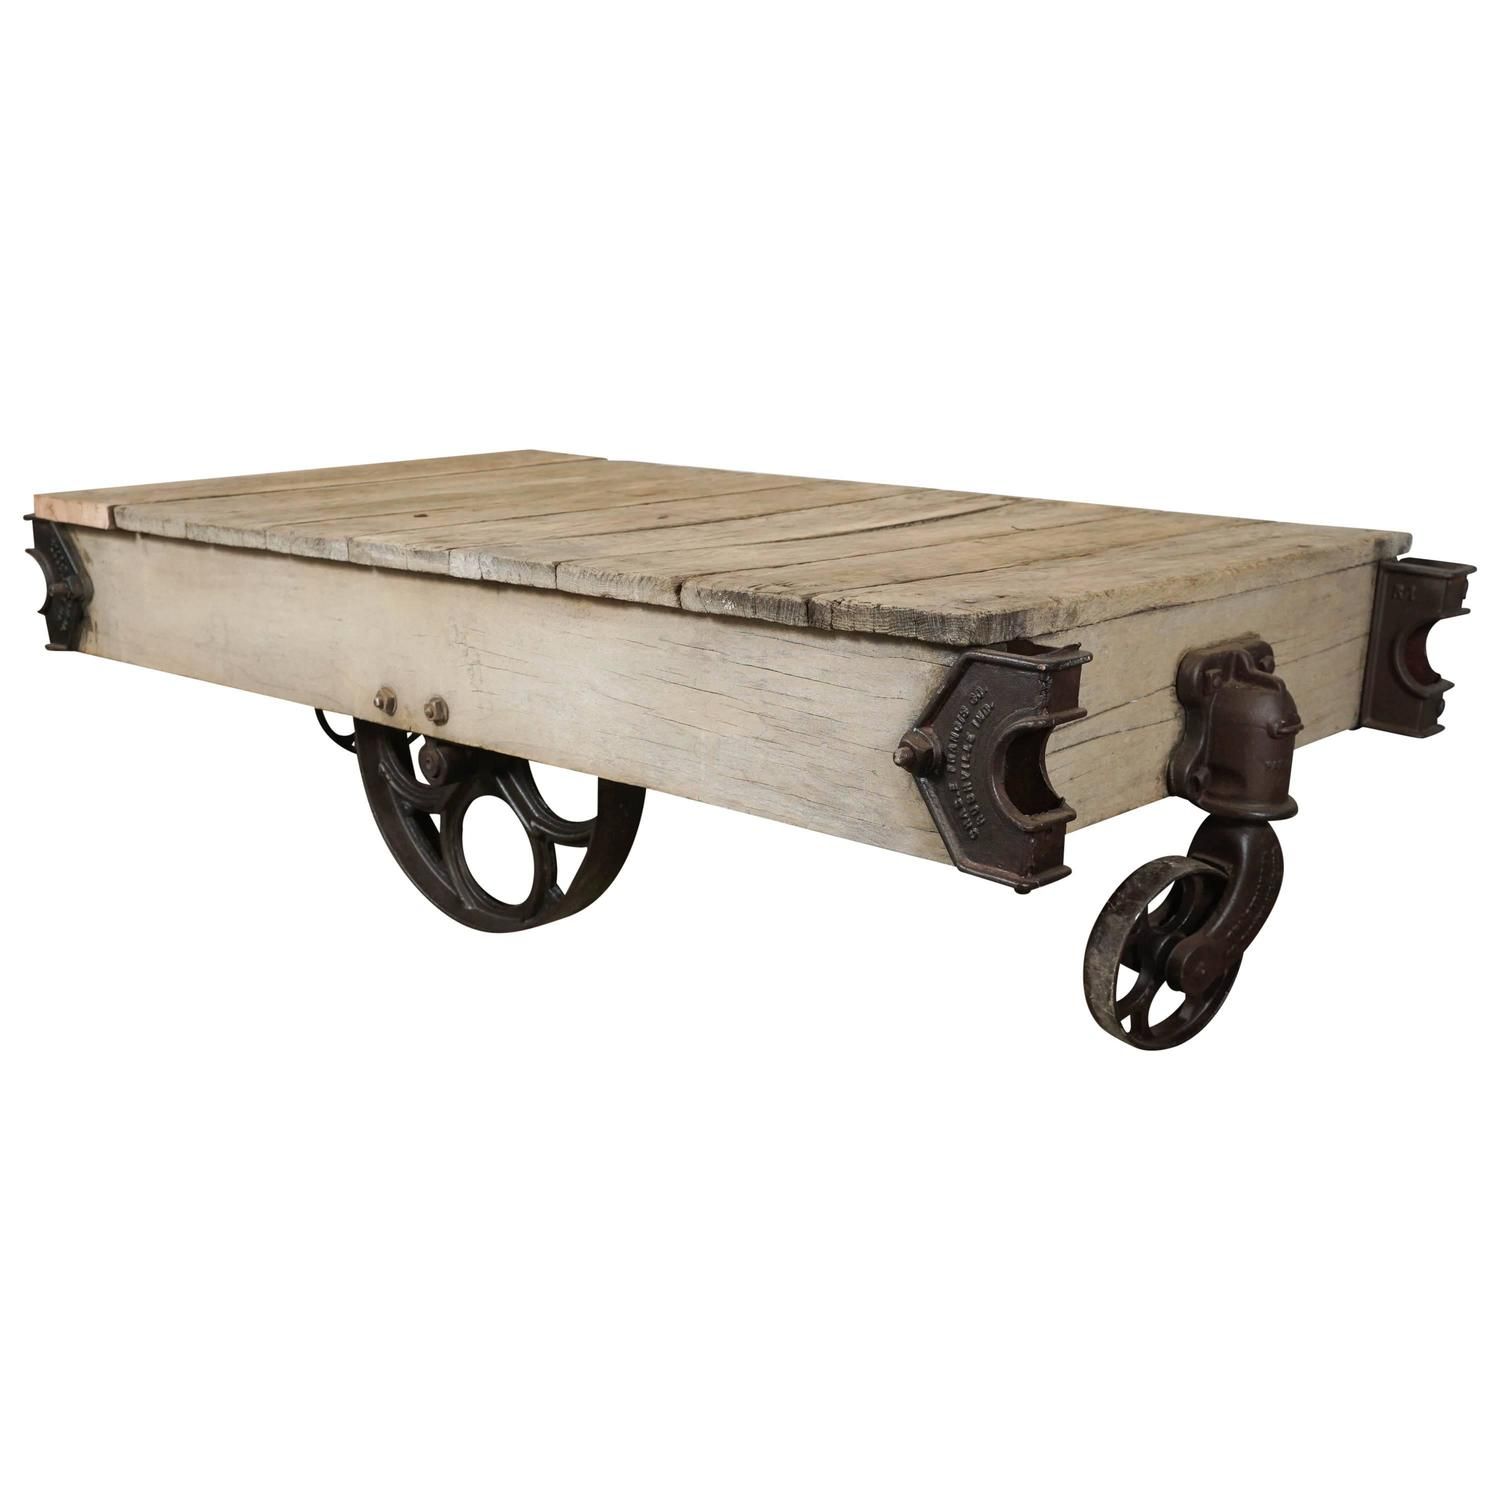 Antique Industrial Cart Coffee Table: Vintage Industrial Cart Coffee Table For Sale At 1stdibs